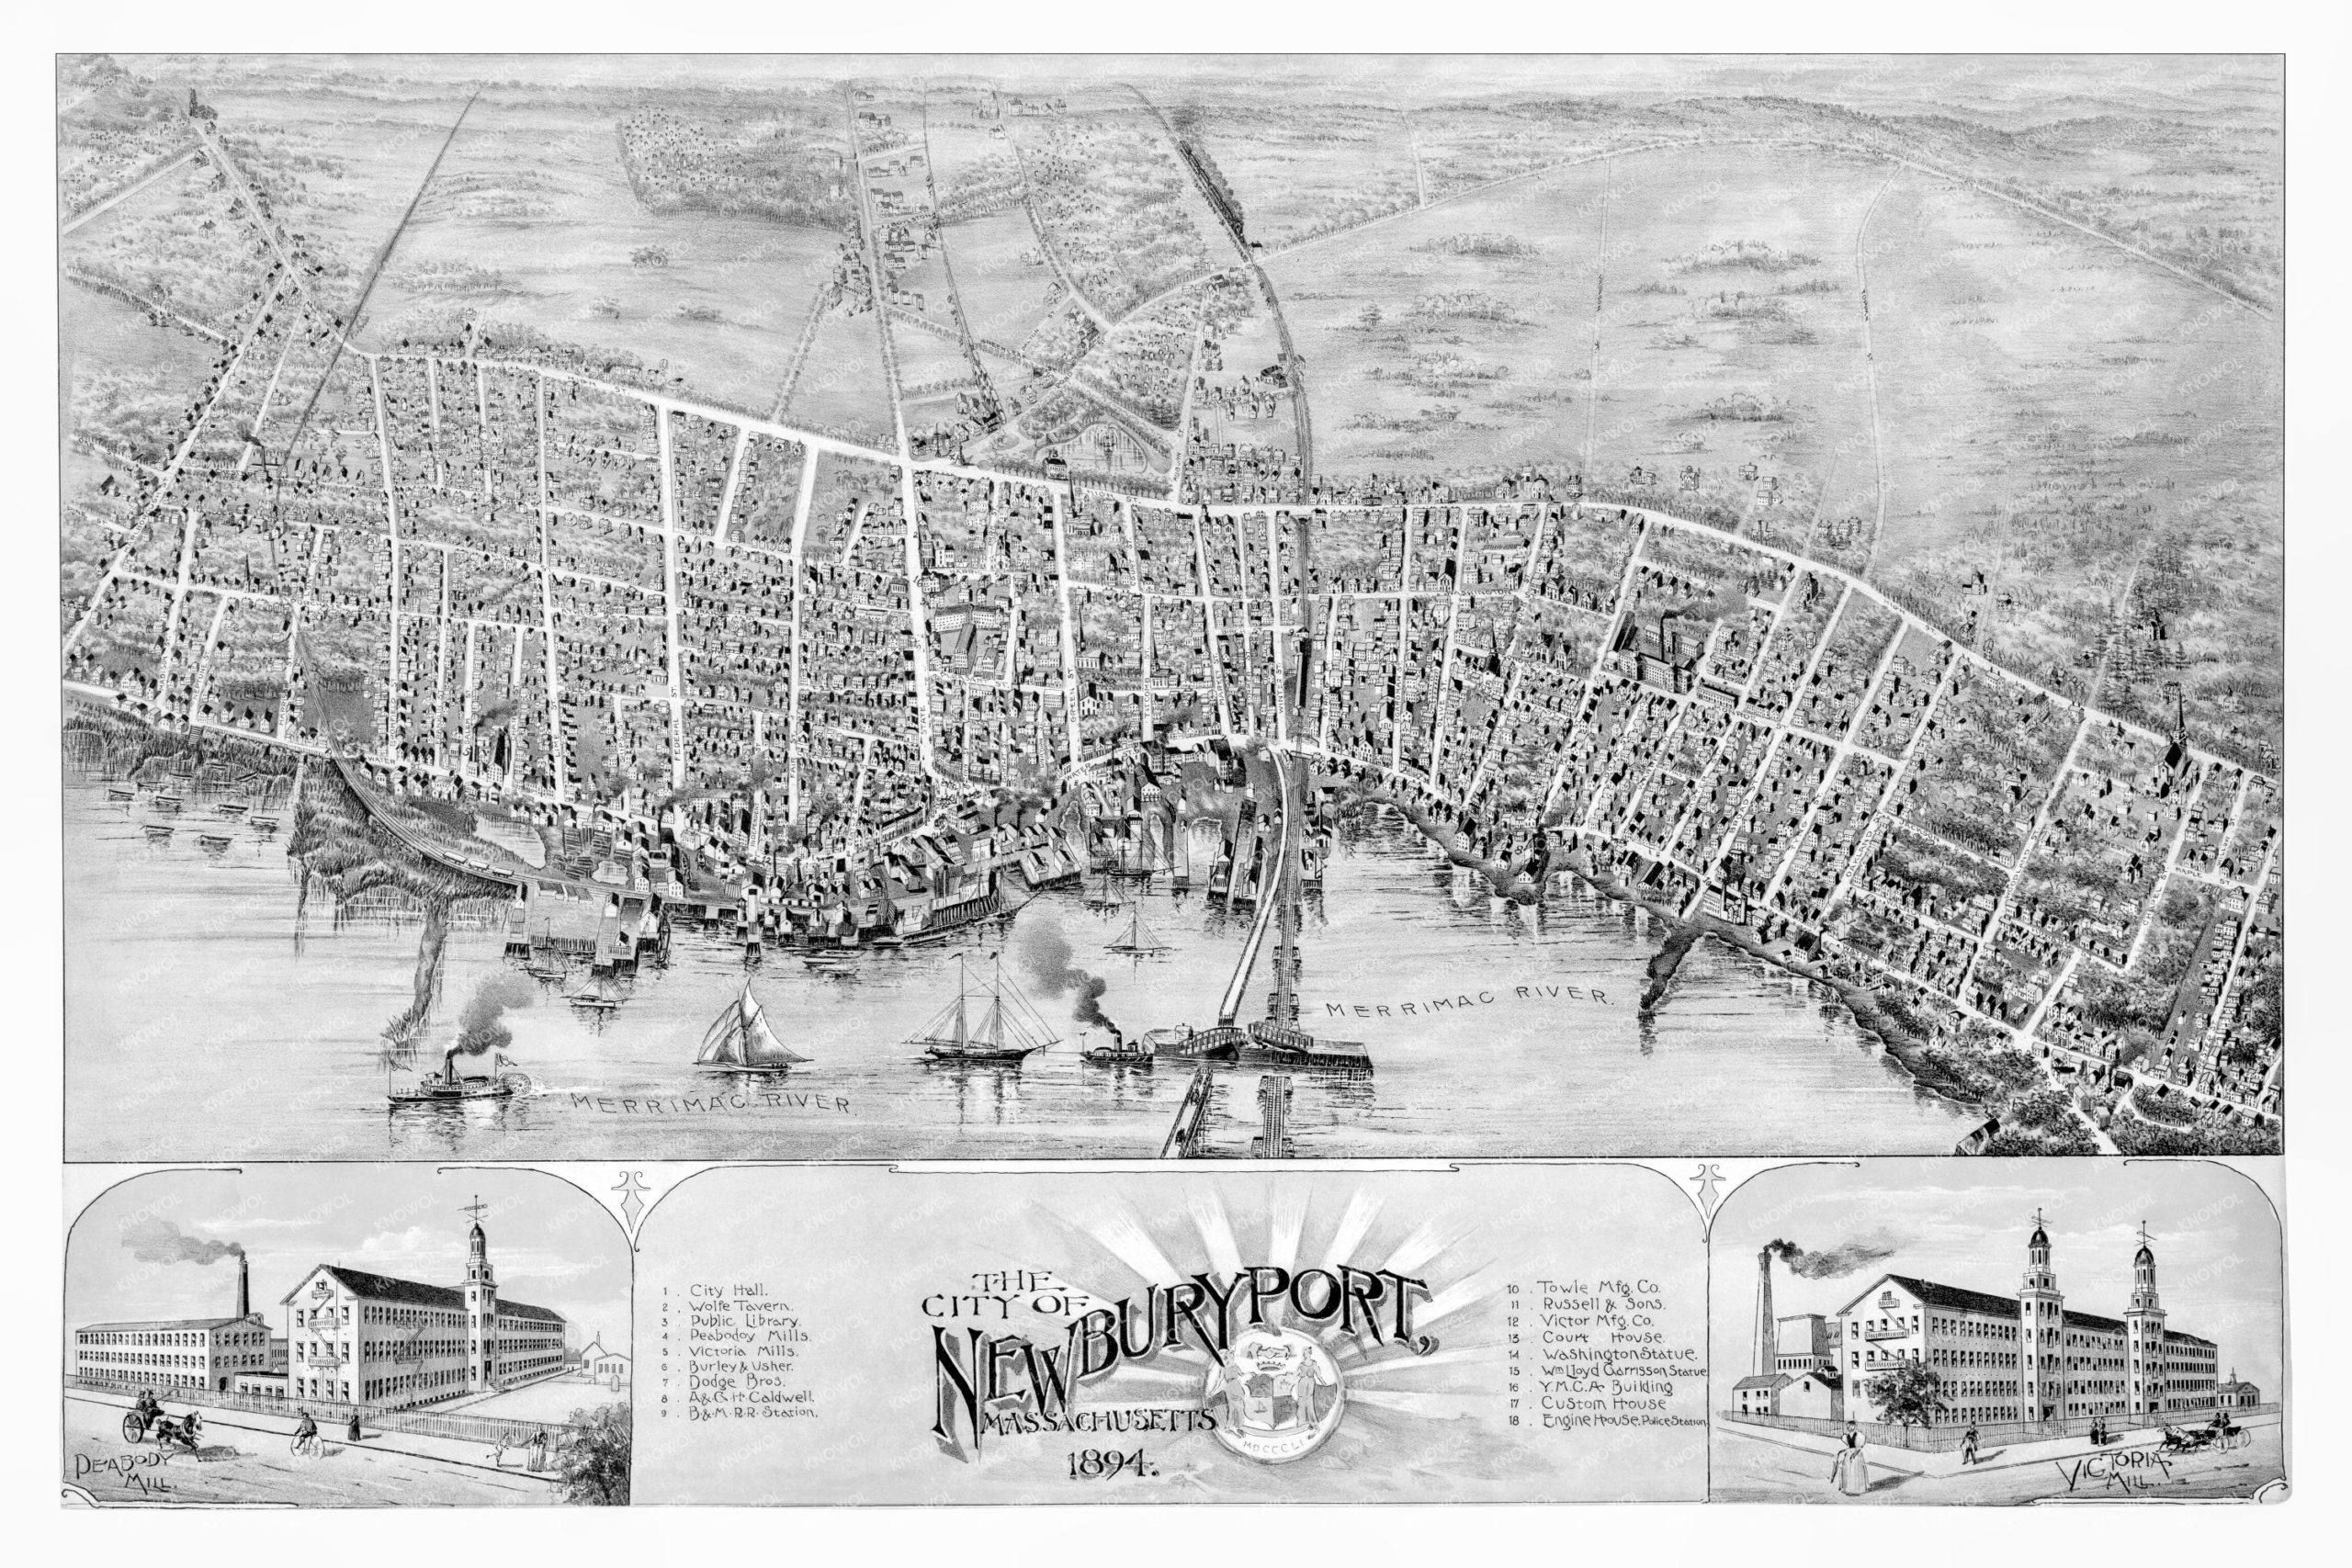 Old map showing a bird's eye view of Newburyport, Massachusetts in 1894. Detailed with street names and old landmarks.